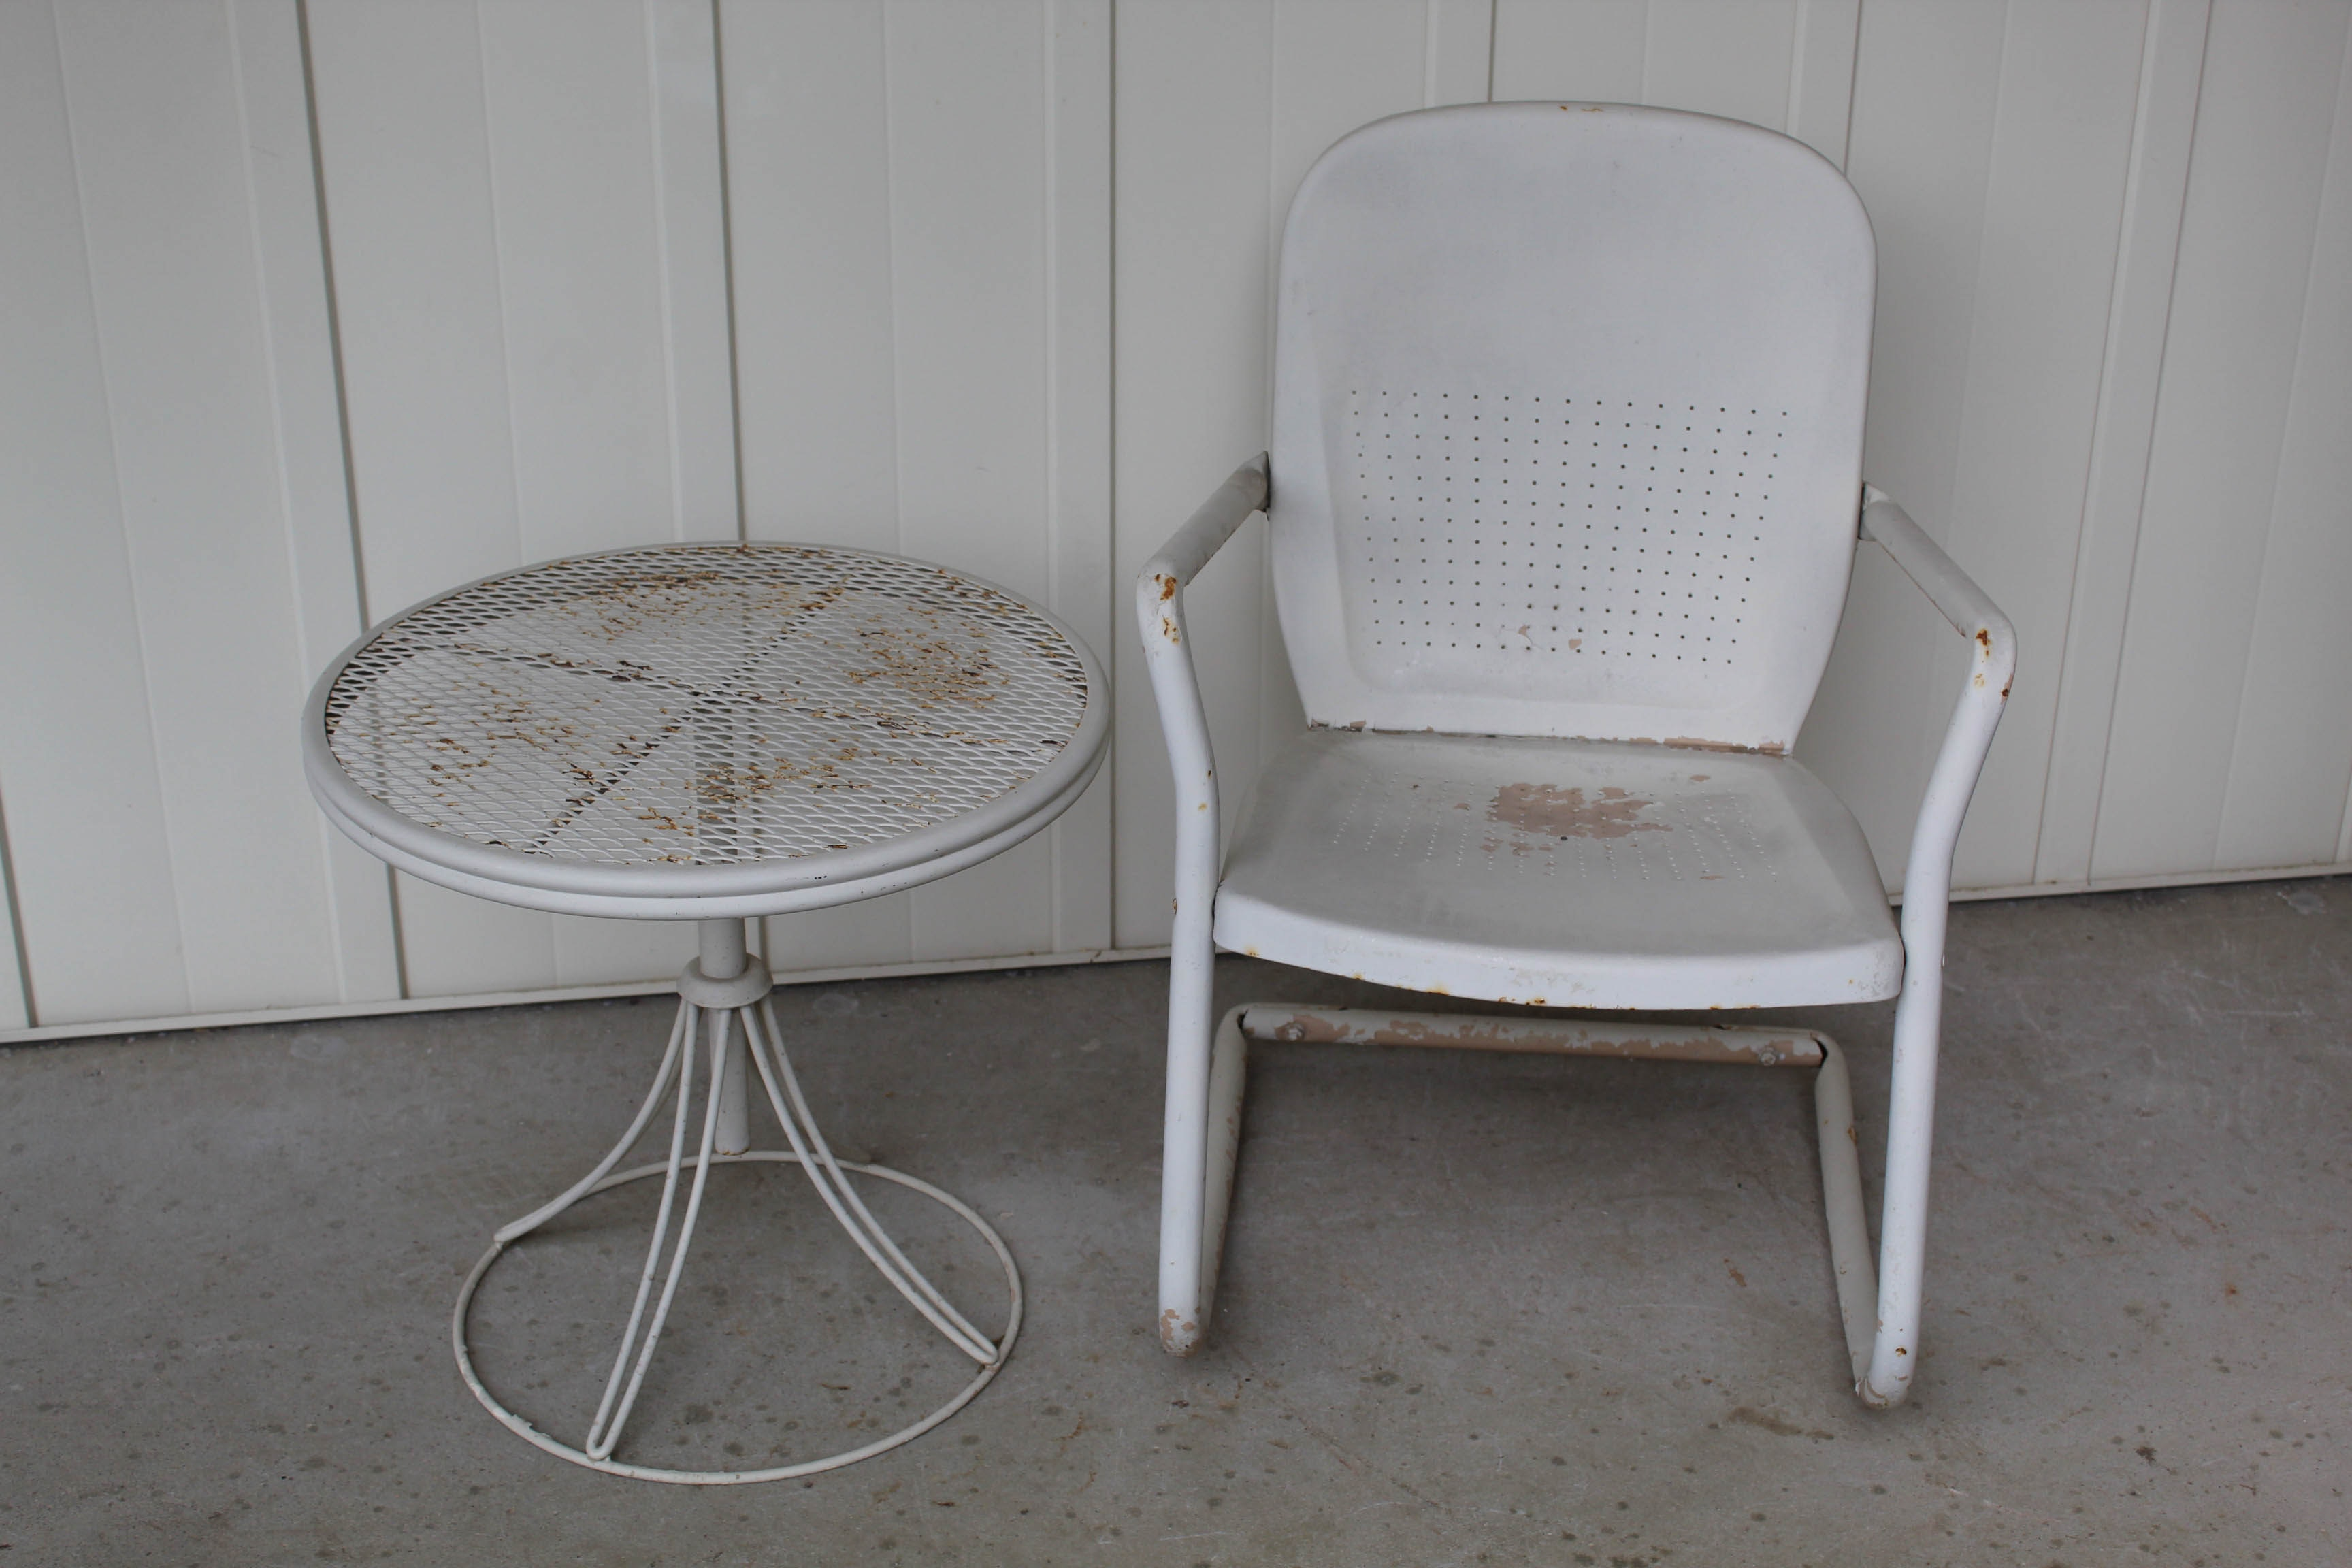 Vintage Patio Chairs and Tables